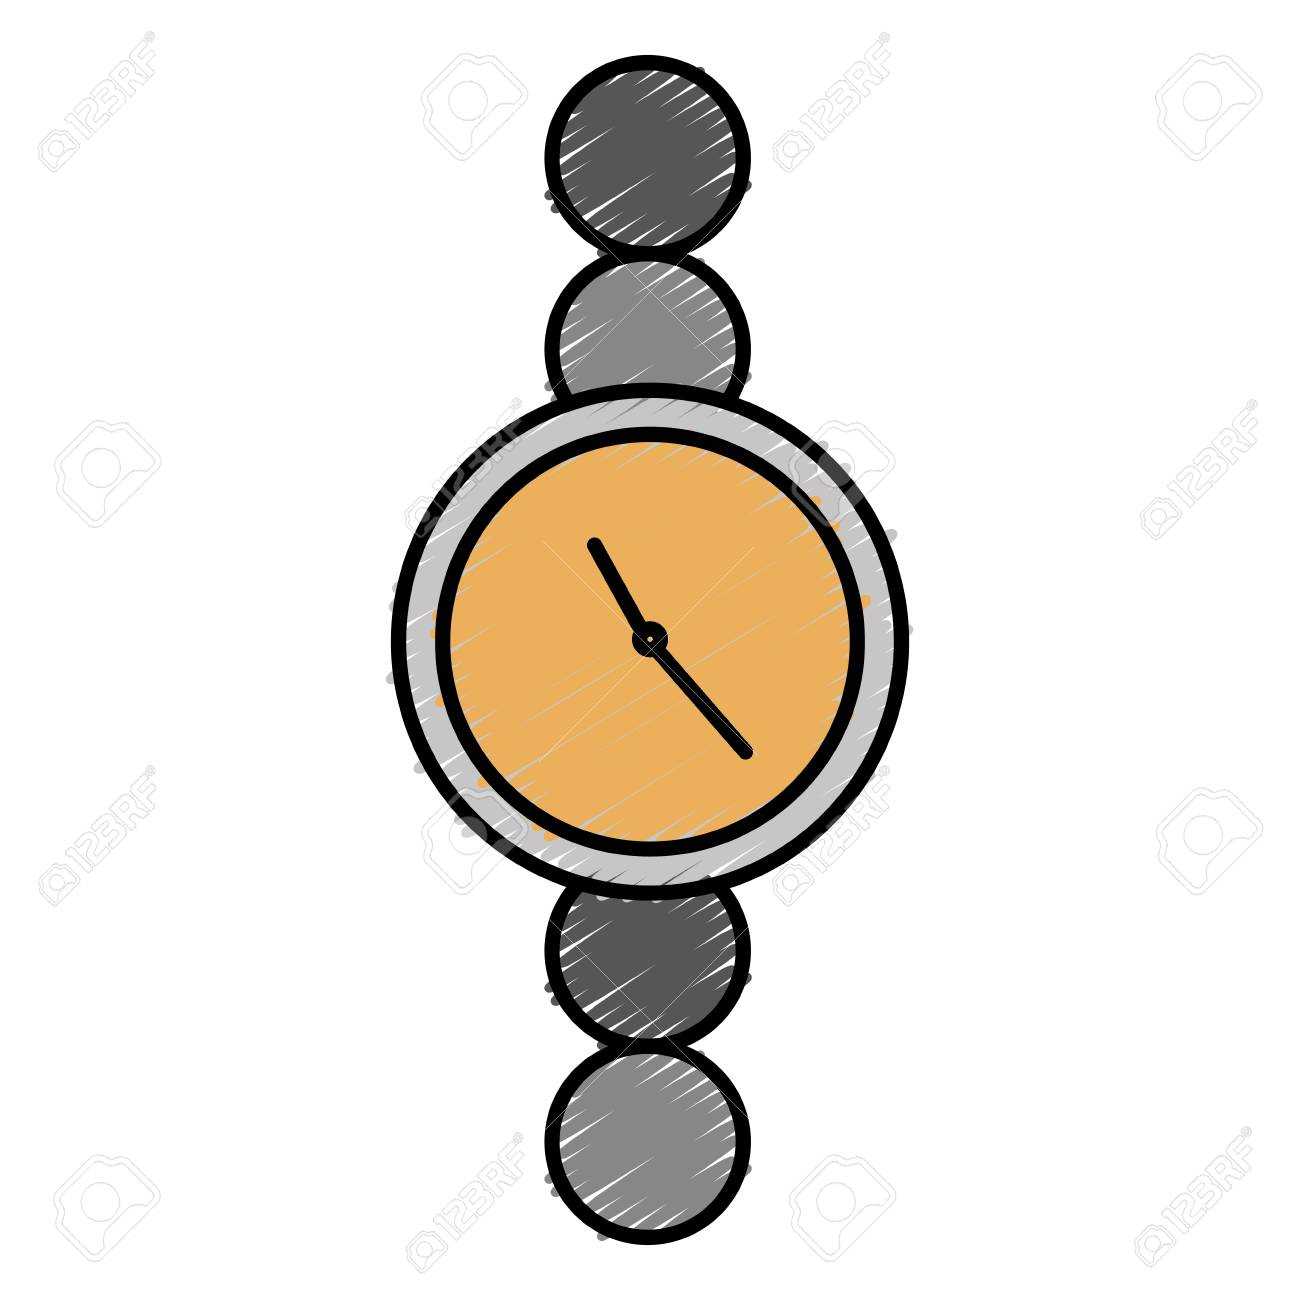 watch icon over white background vector illustration royalty free rh 123rf com vector watch problems vector watch problems